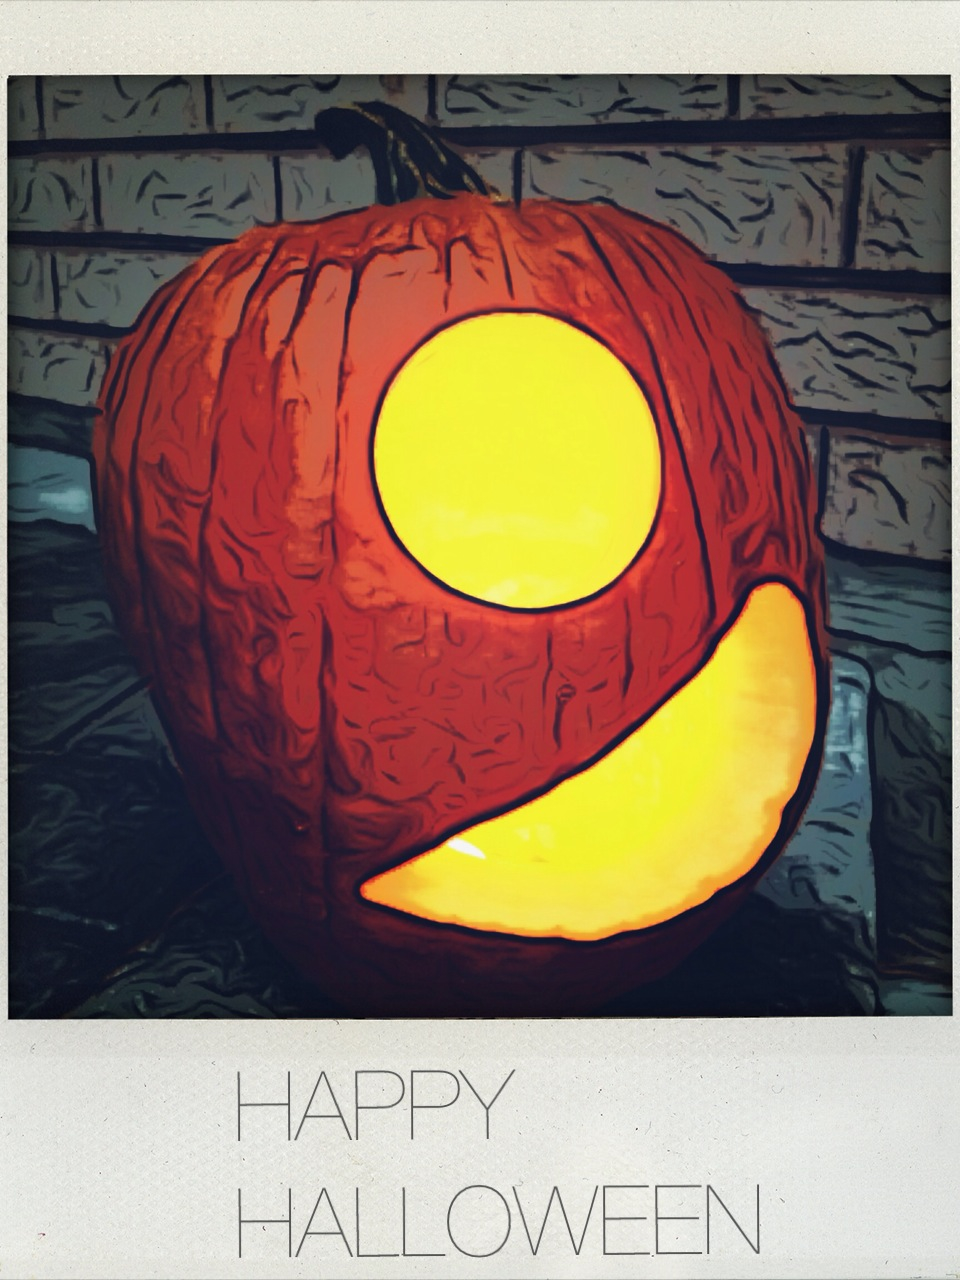 One of our pumpkins this year- shot with the iPhone camera, tweaked in Toonpaint, then Shakeitphoto, text in LineCamera. Cheers!